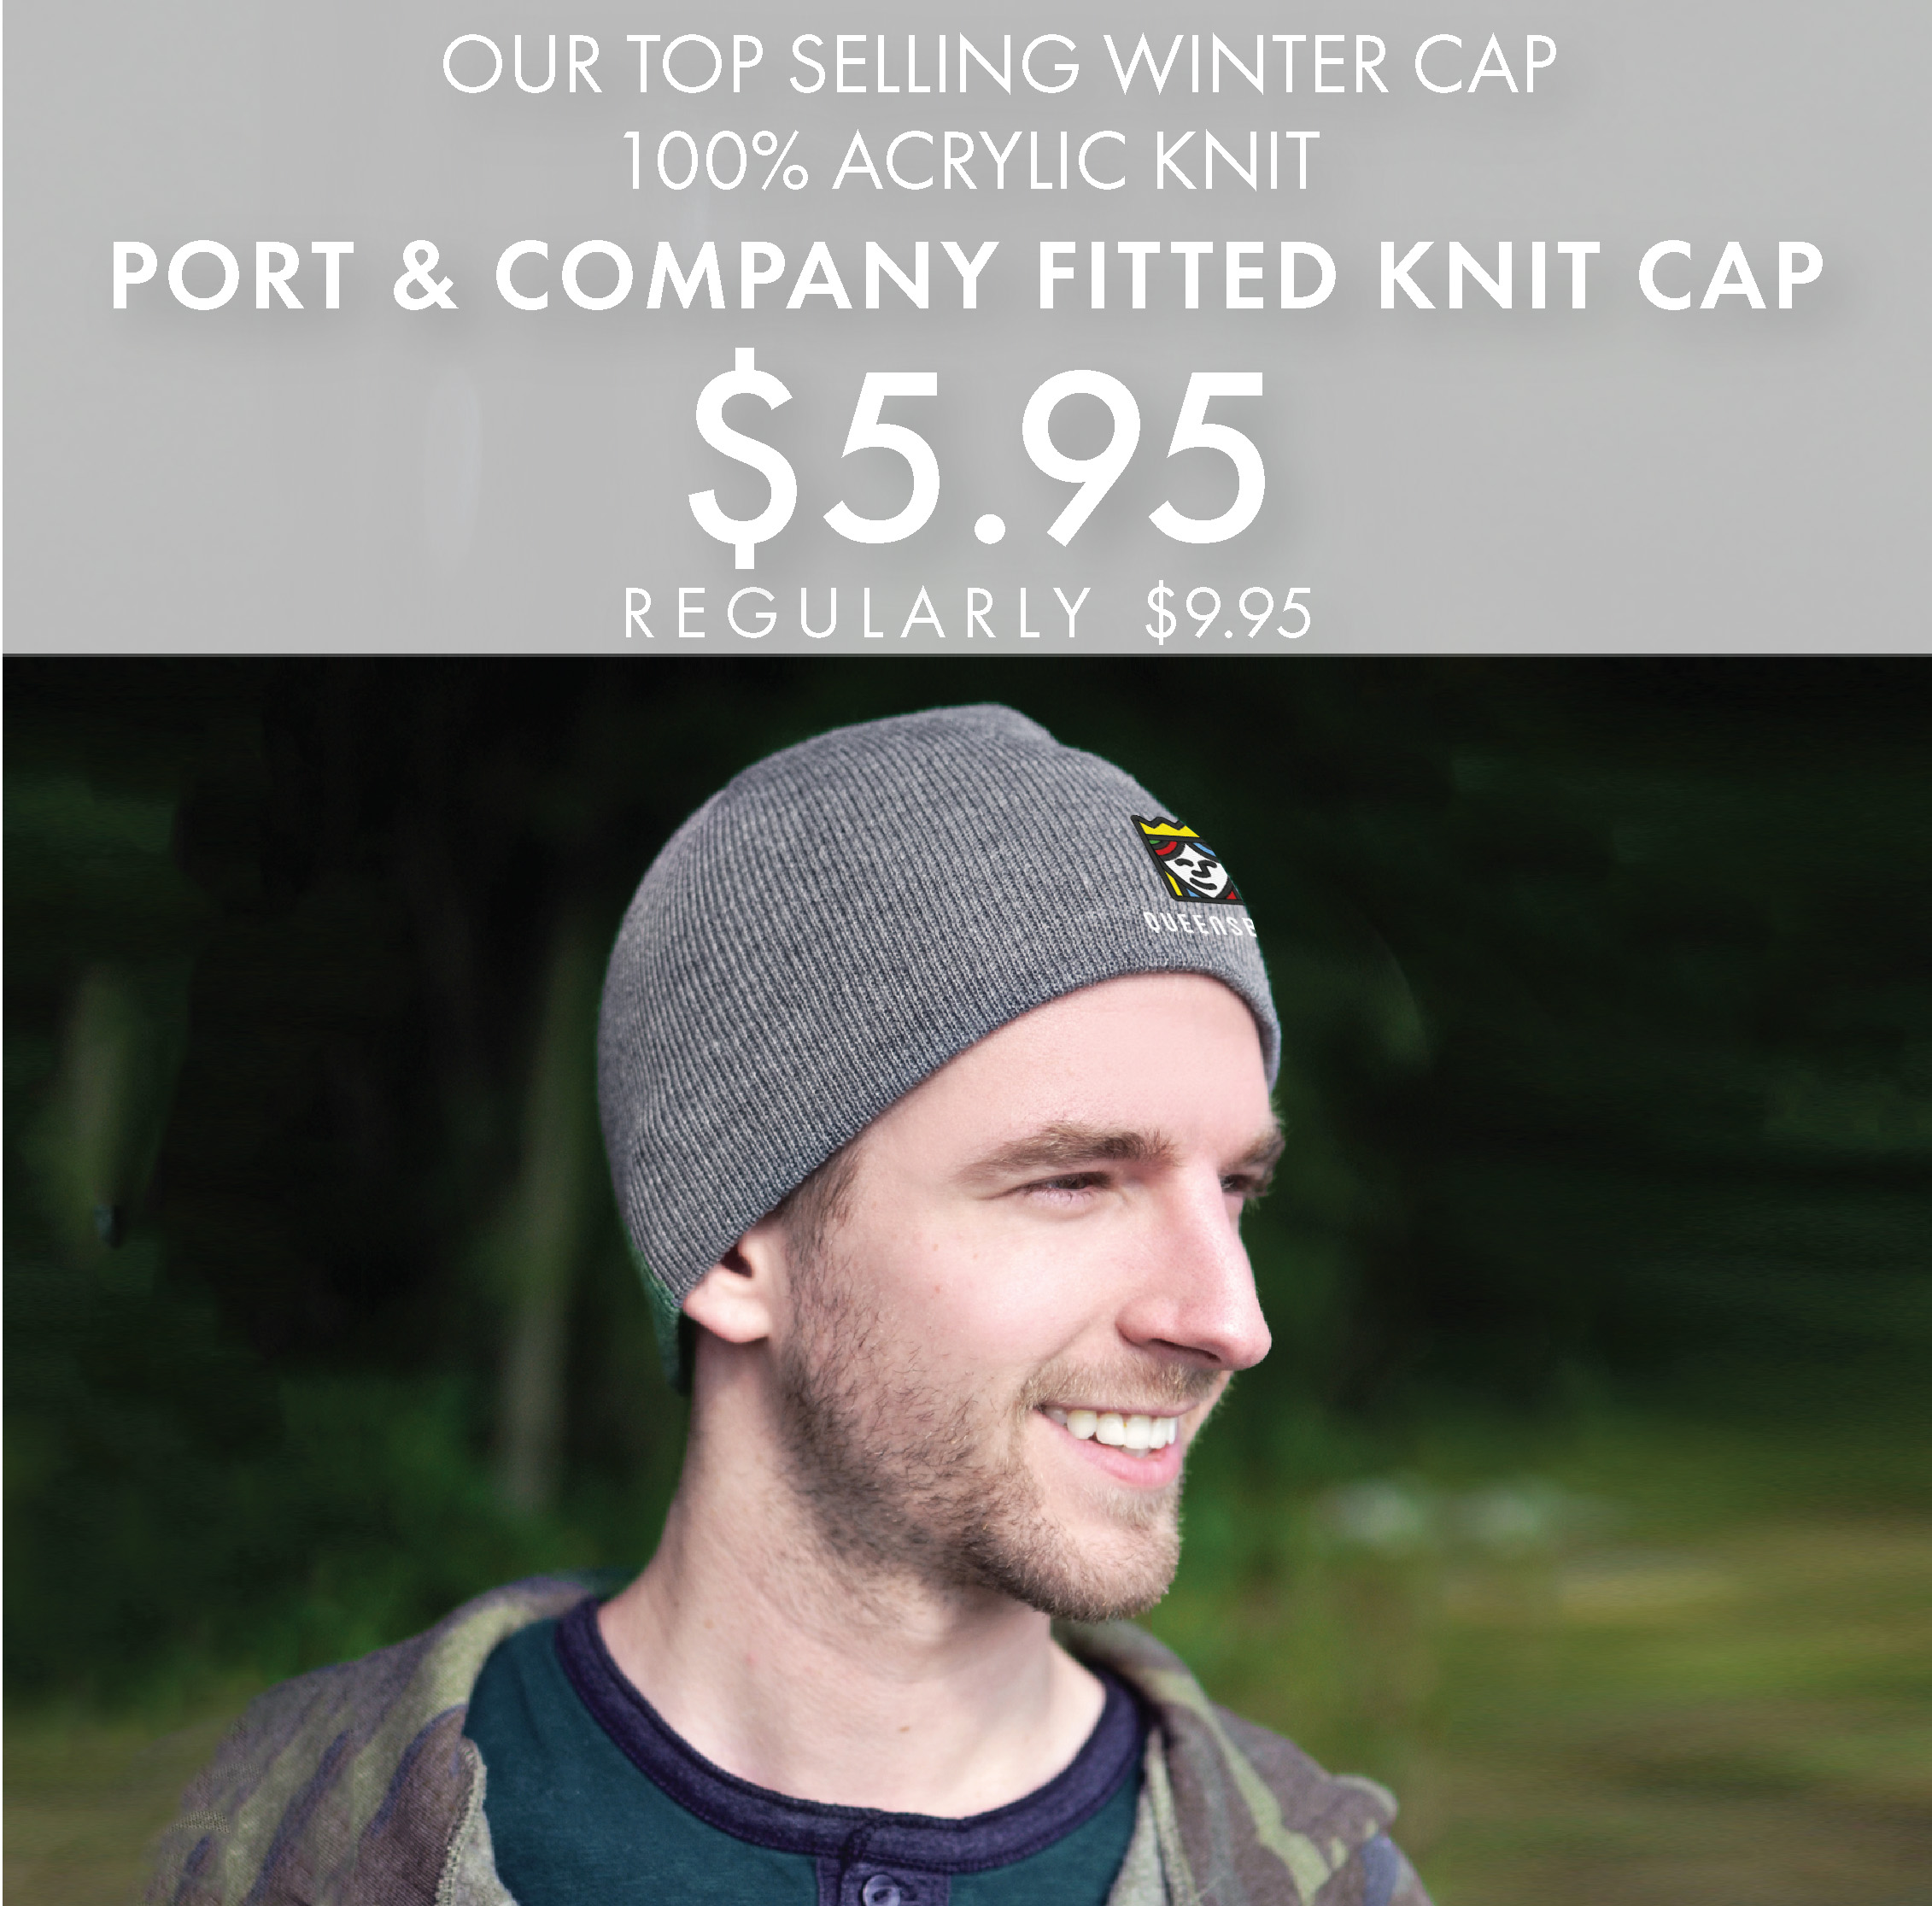 Custom Embroidered Port & Company Fitted Knit Cap